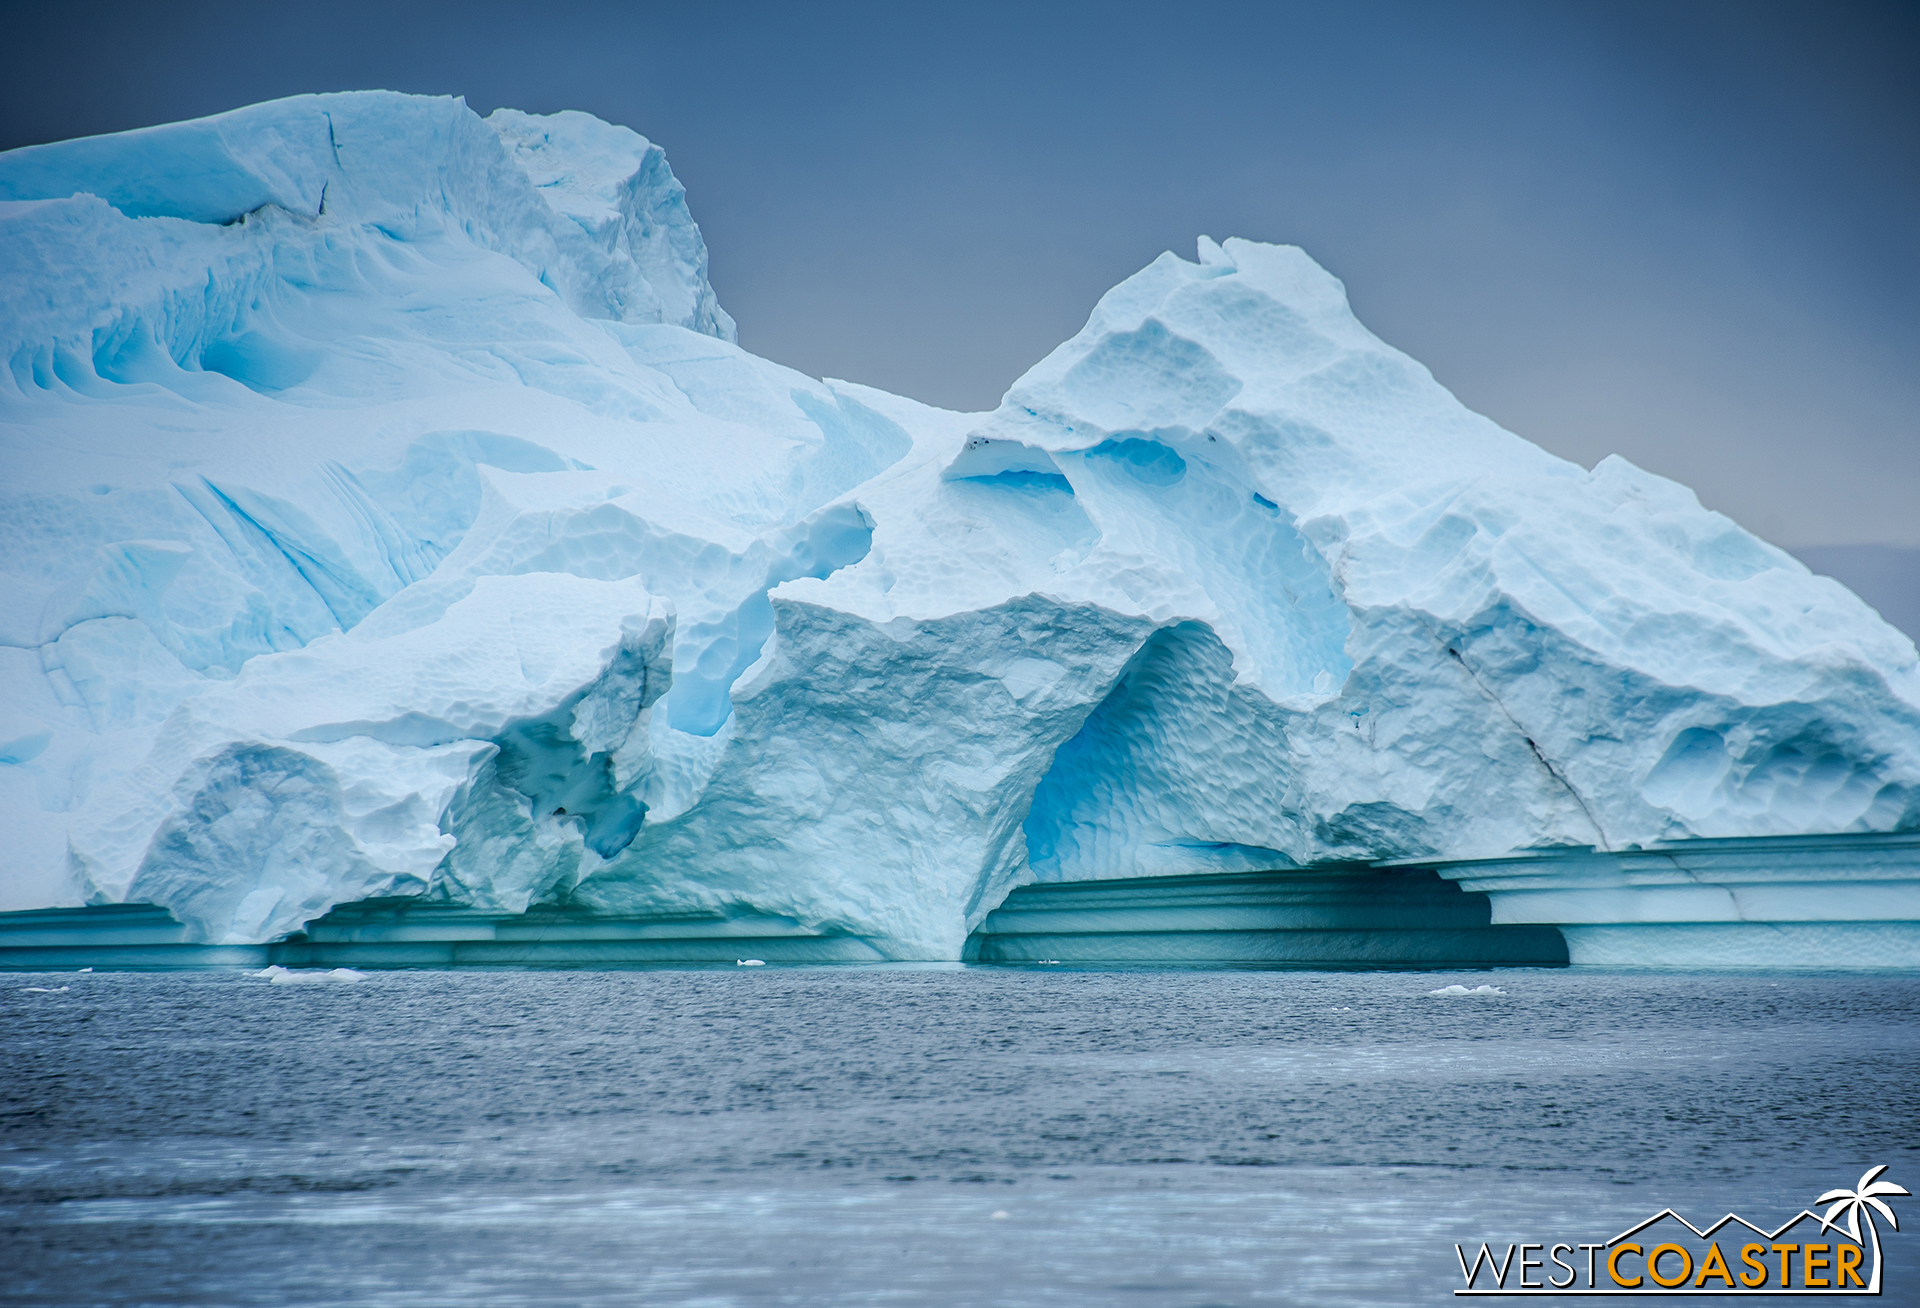 These bands showcase the water erosion and told the story of the iceberg's age and evolution.